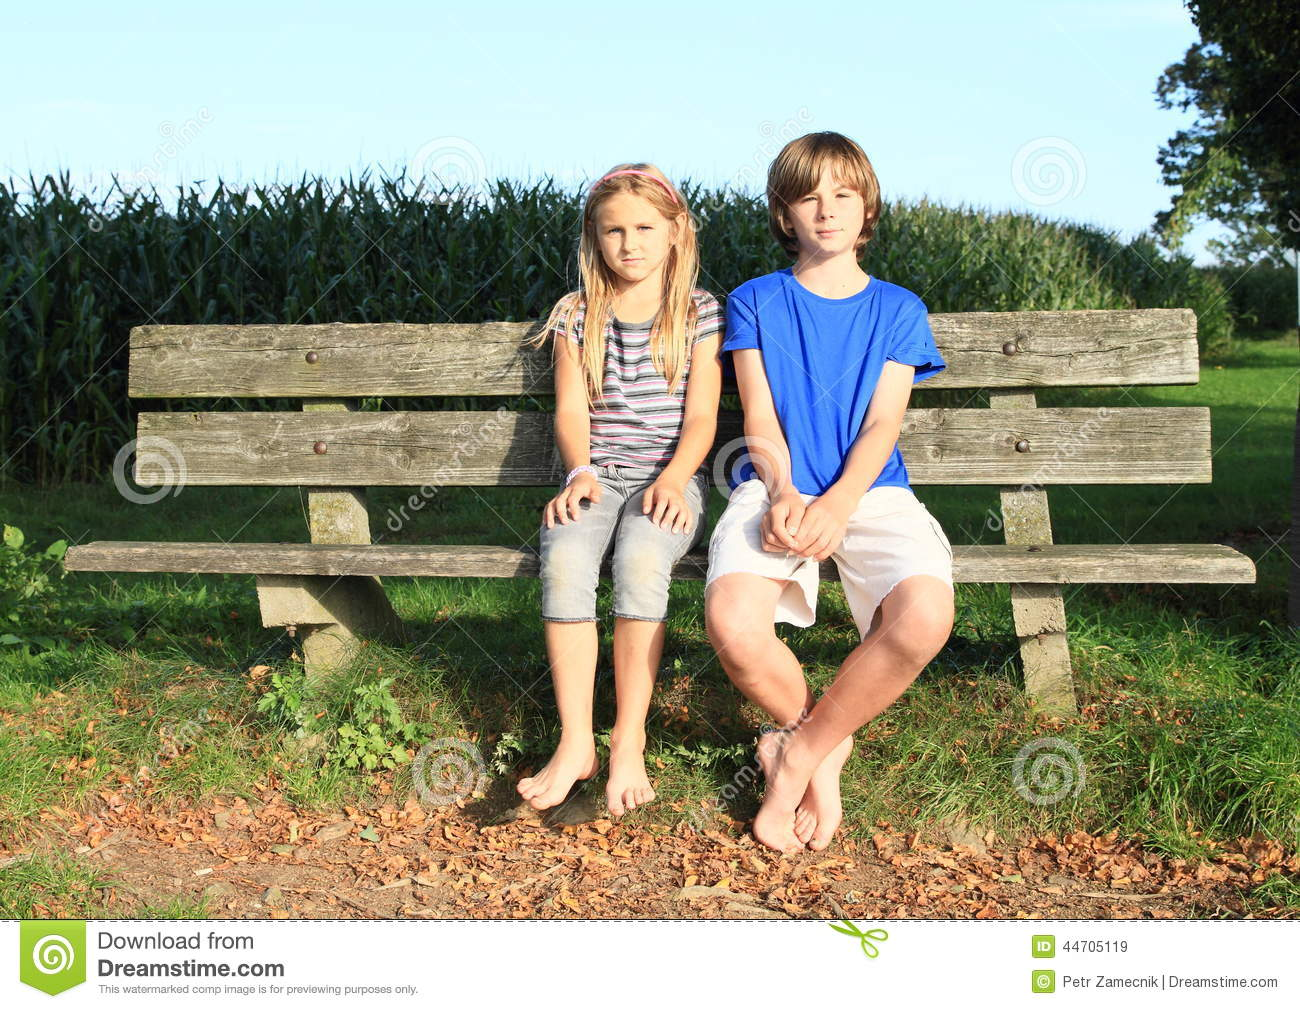 Little Kids Girl And Boy Sitting On A Bench Stock Photo  : little kids girl boy sitting bench cute barefoot wooden corn field behind 44705119 from www.dreamstime.com size 1300 x 1009 jpeg 248kB